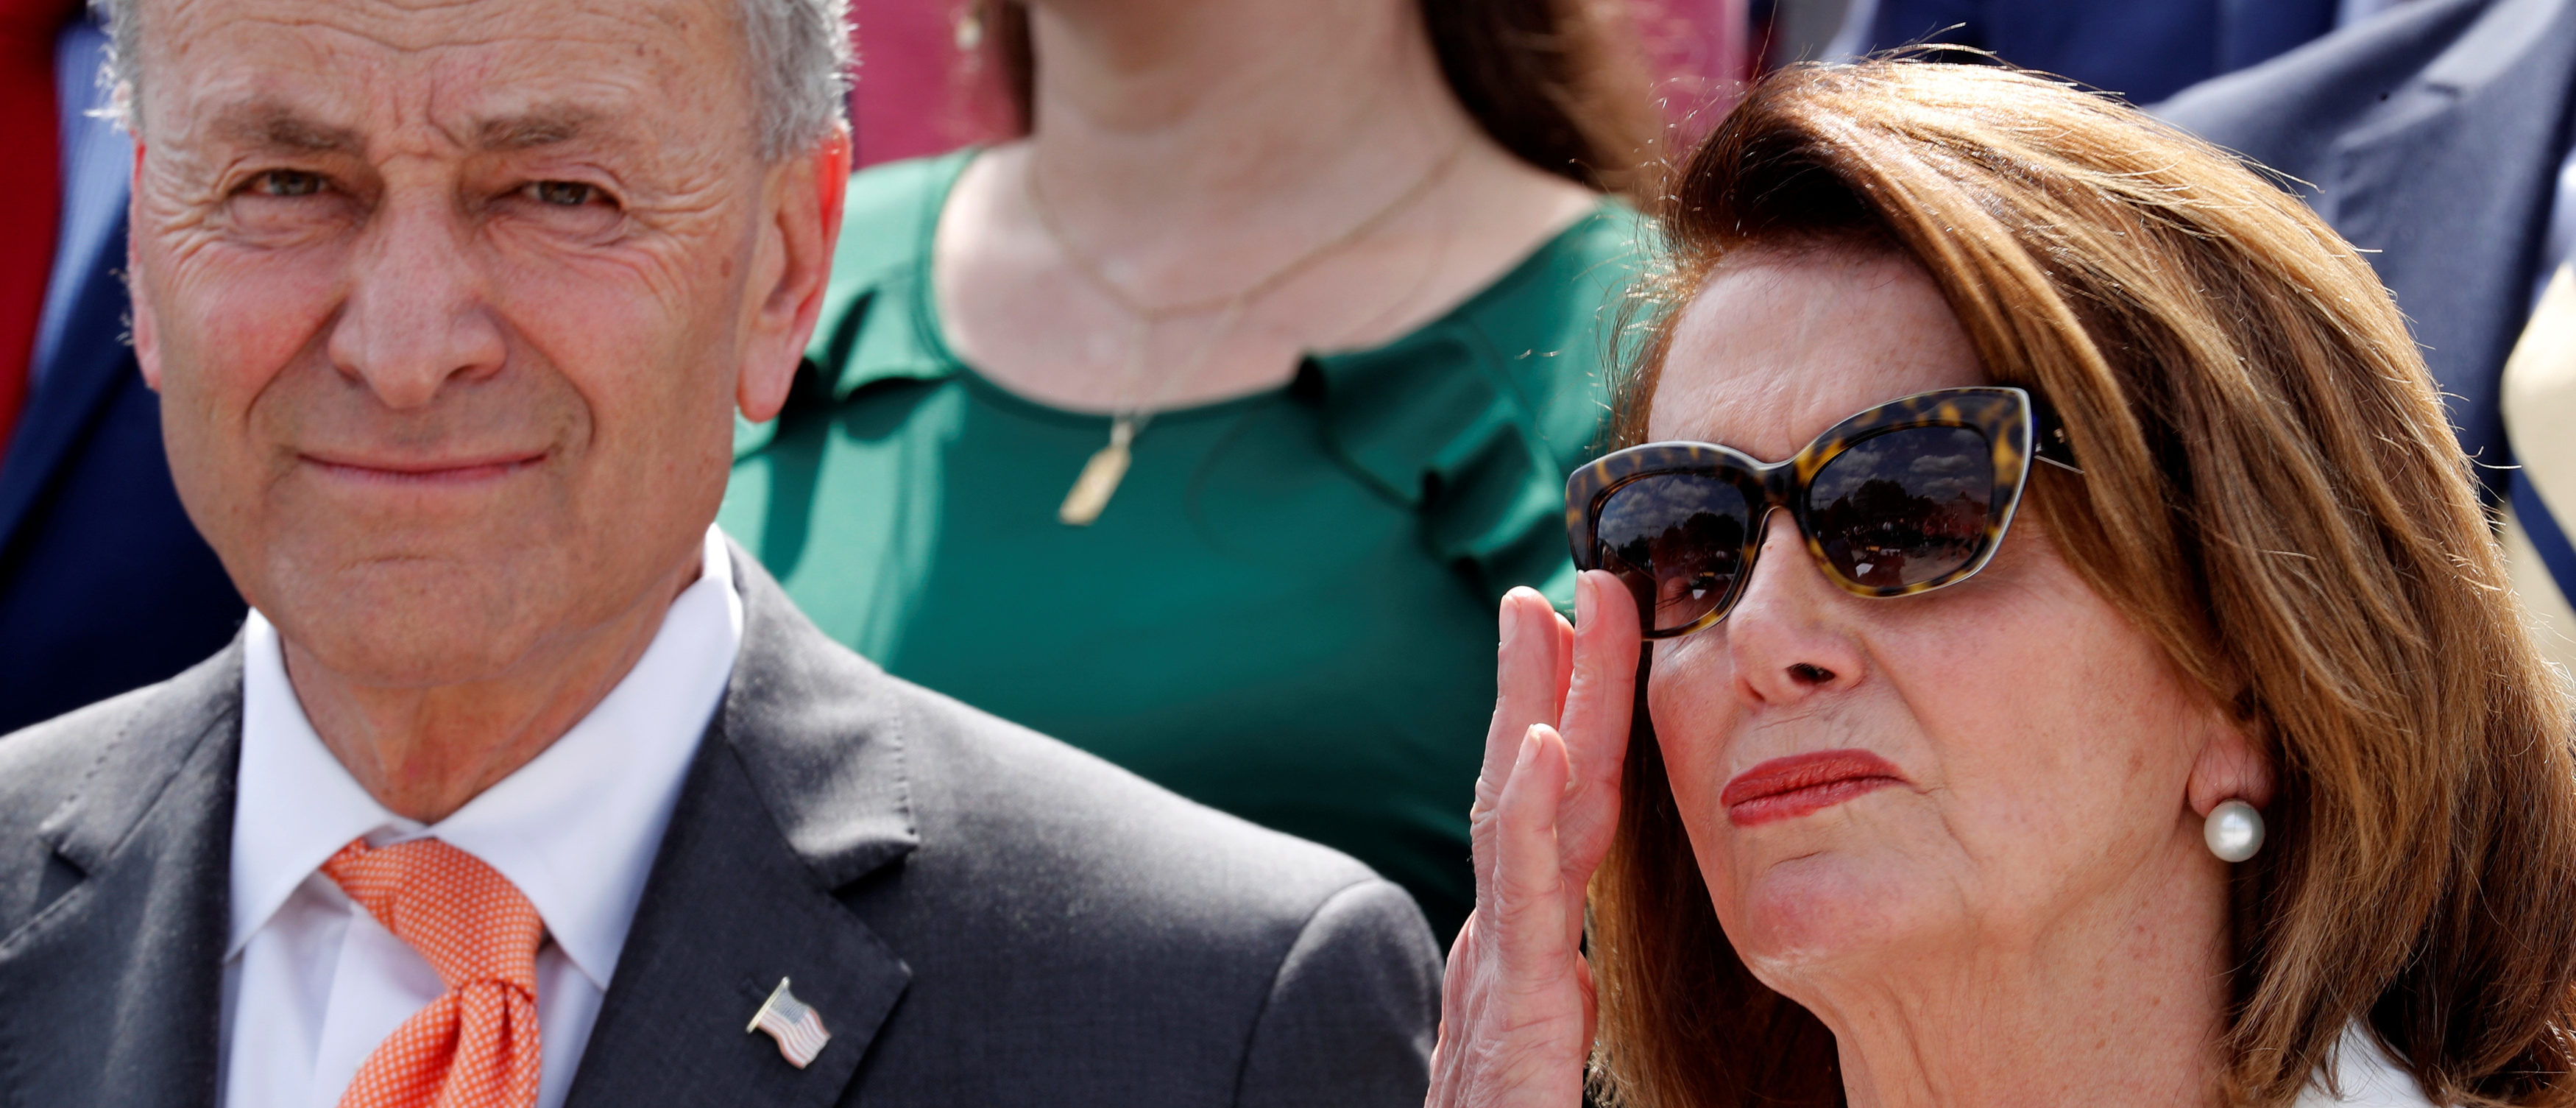 """U.S. House Minority Leader Nancy Pelosi (D-CA) leads Democratic members of Congress, including Senate Minority Leader Chuck Schumer (D-NY) (L), during their """"Better Deal"""" platform rally at the U.S. Capitol in Washington, May 21, 2018. REUTERS/Jonathan Ernst"""